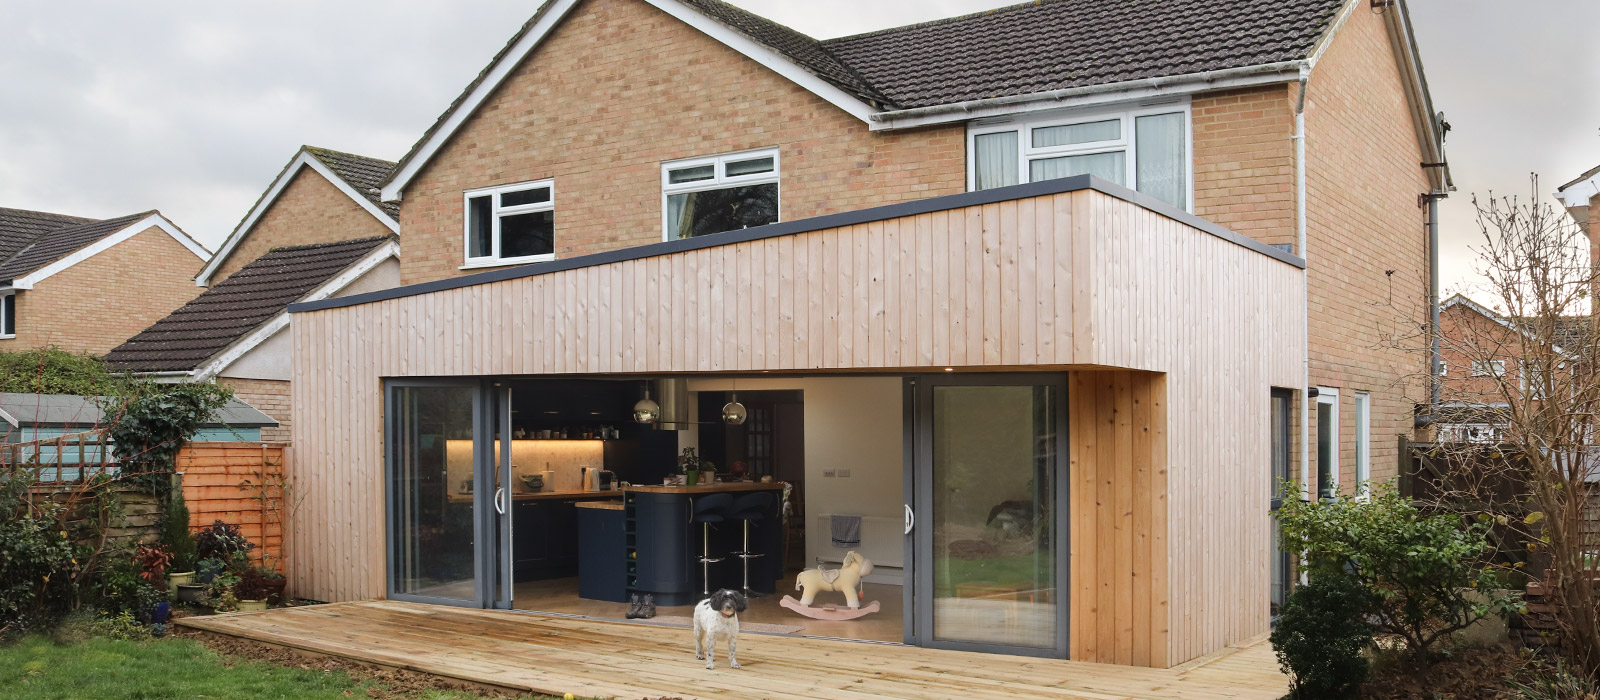 gyd-architecture | timber finished elevation of extension